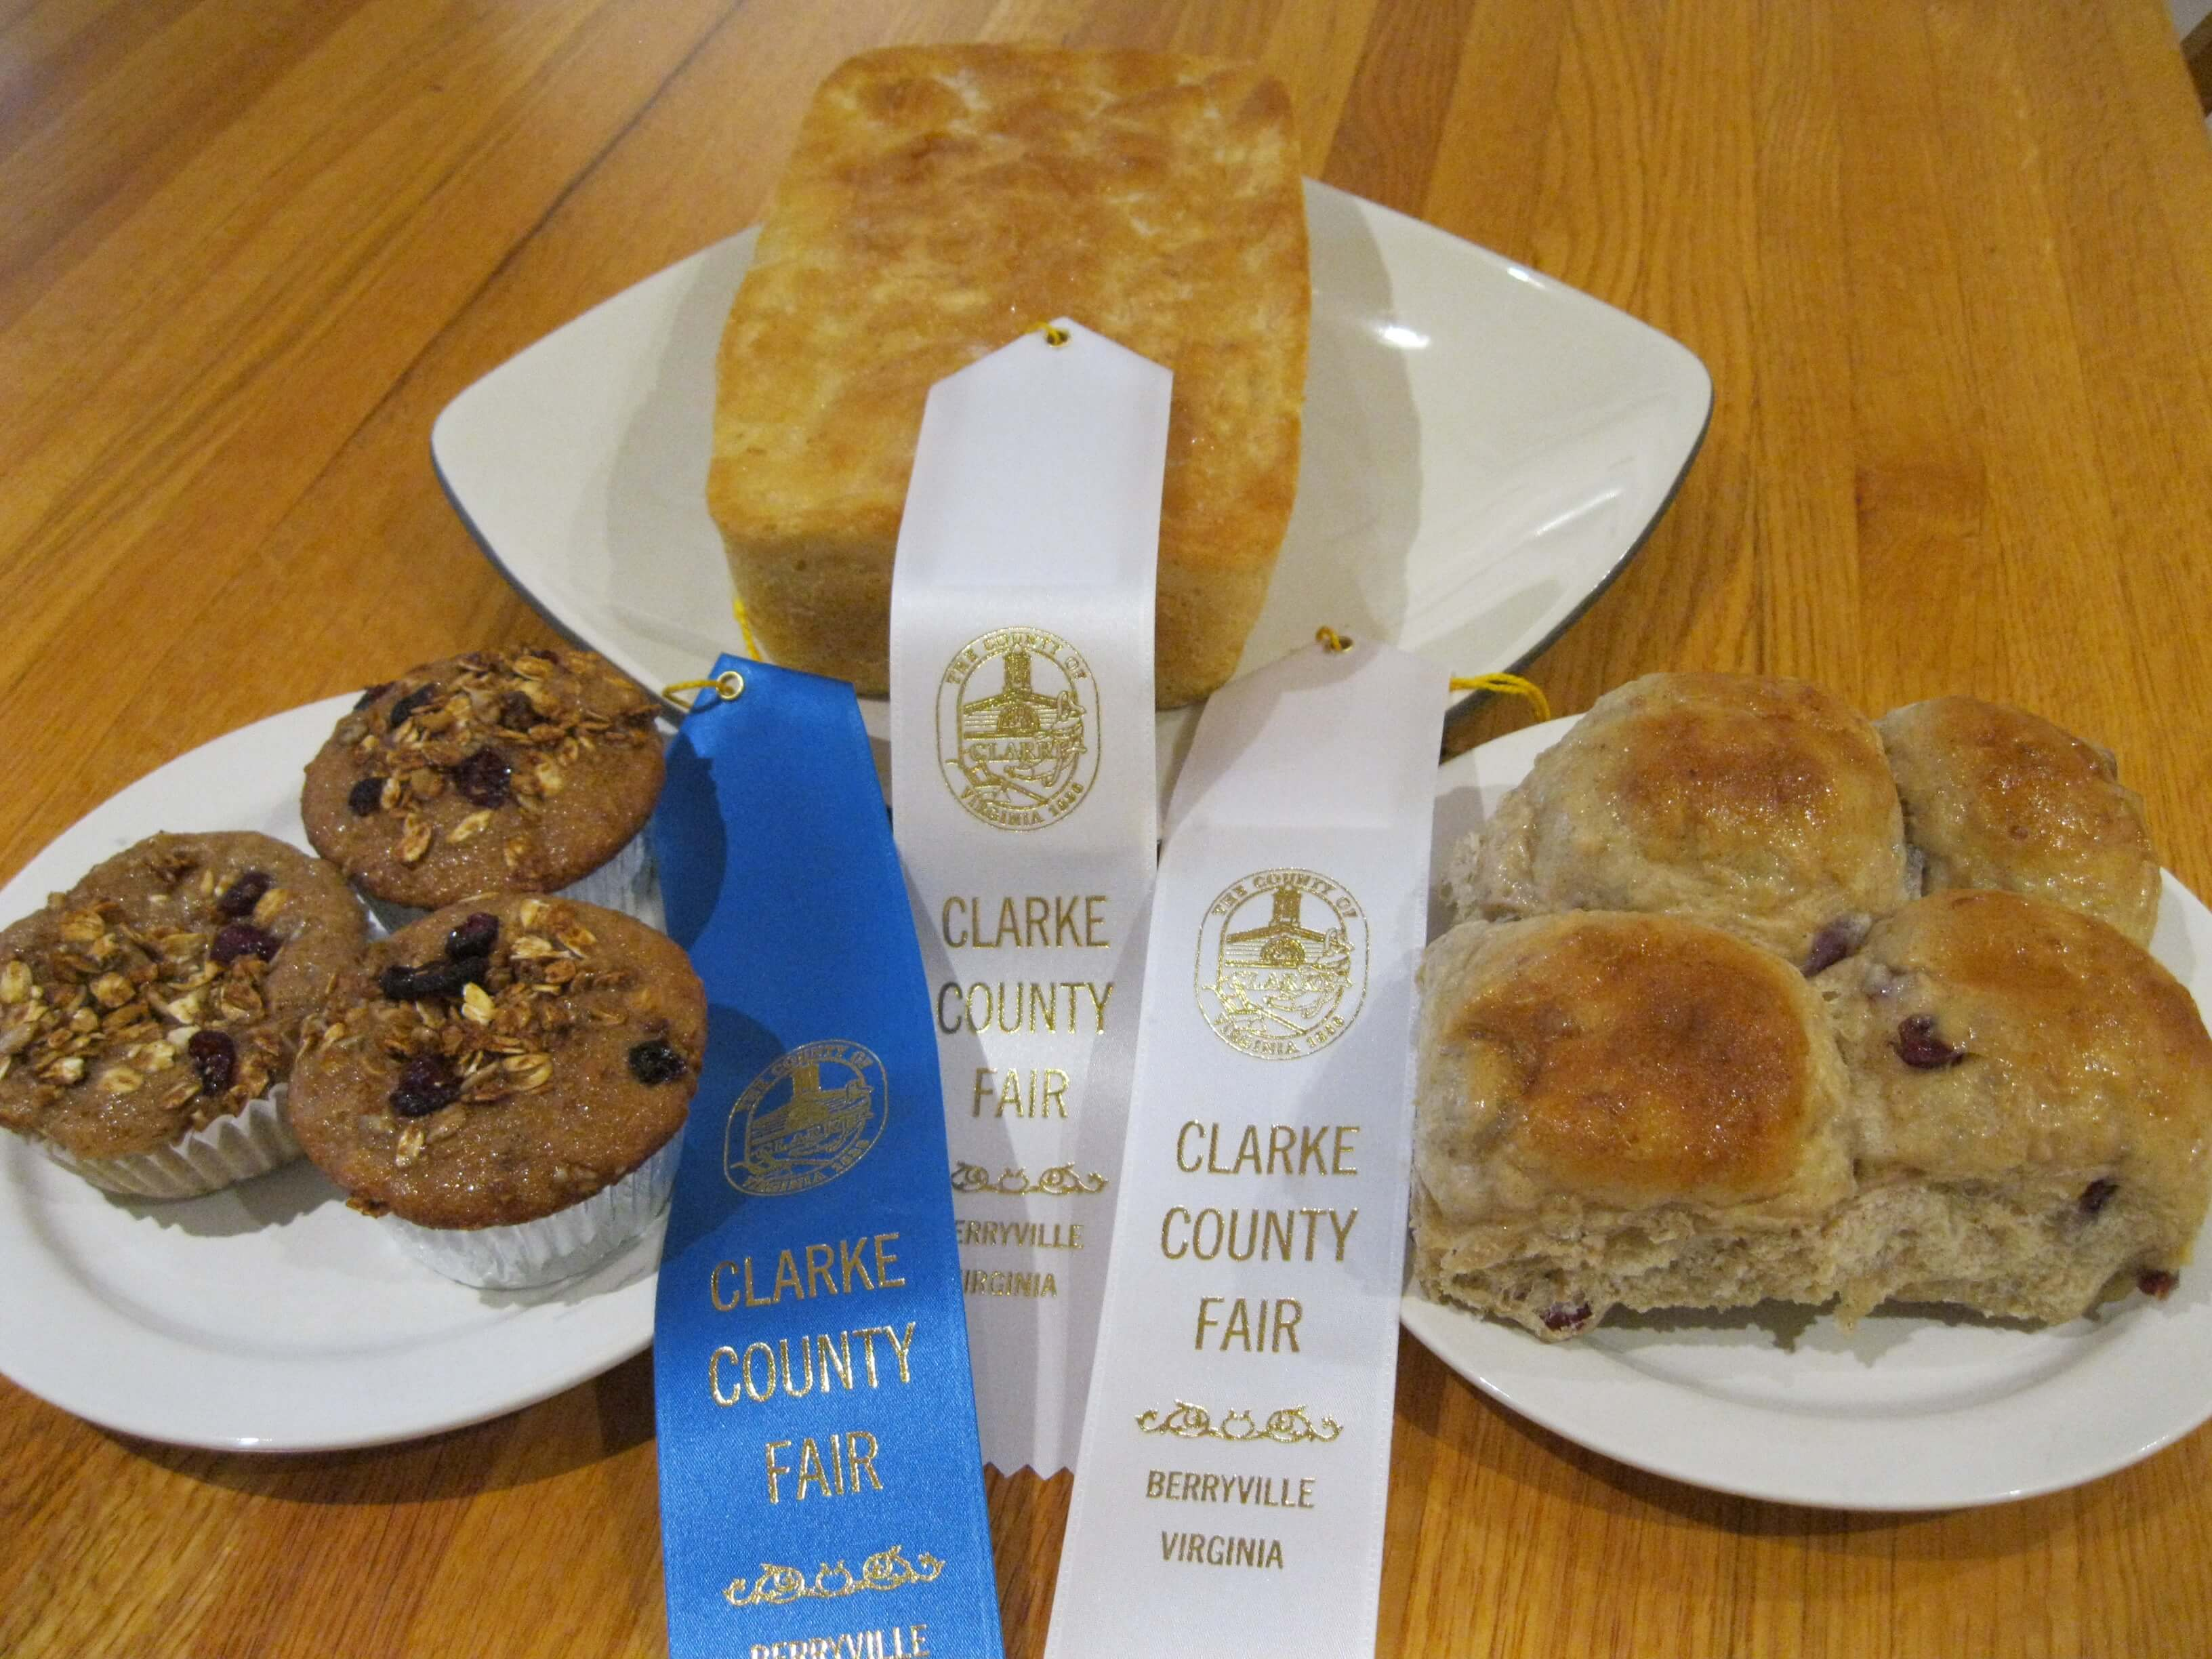 Clarke County Fair Prize Winning Baked Goods - Granola Muffins, English Muffin Bread and Cranberry Cinnamon Rolls - Waypoint House B+B